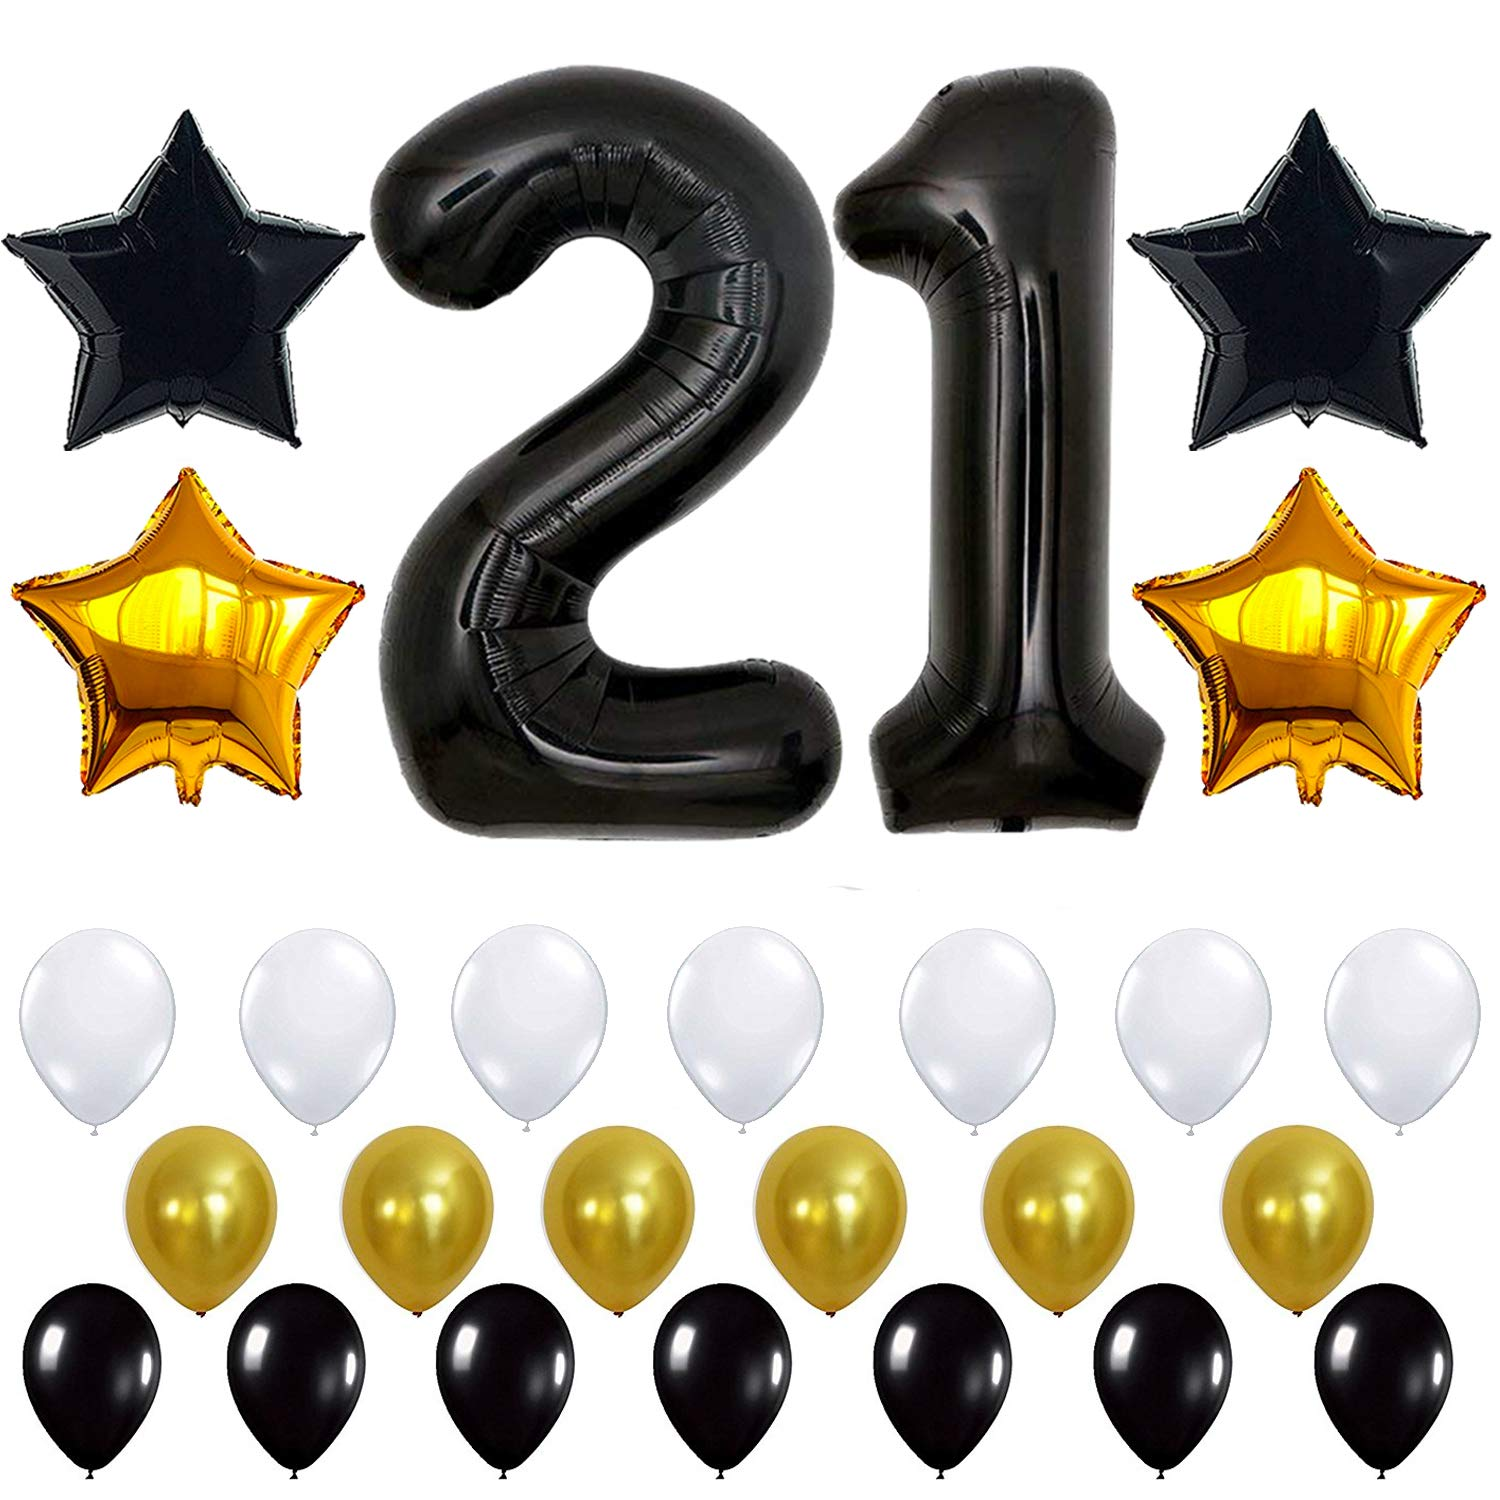 Black 21st Birthday Decorations Large Pack Of 29